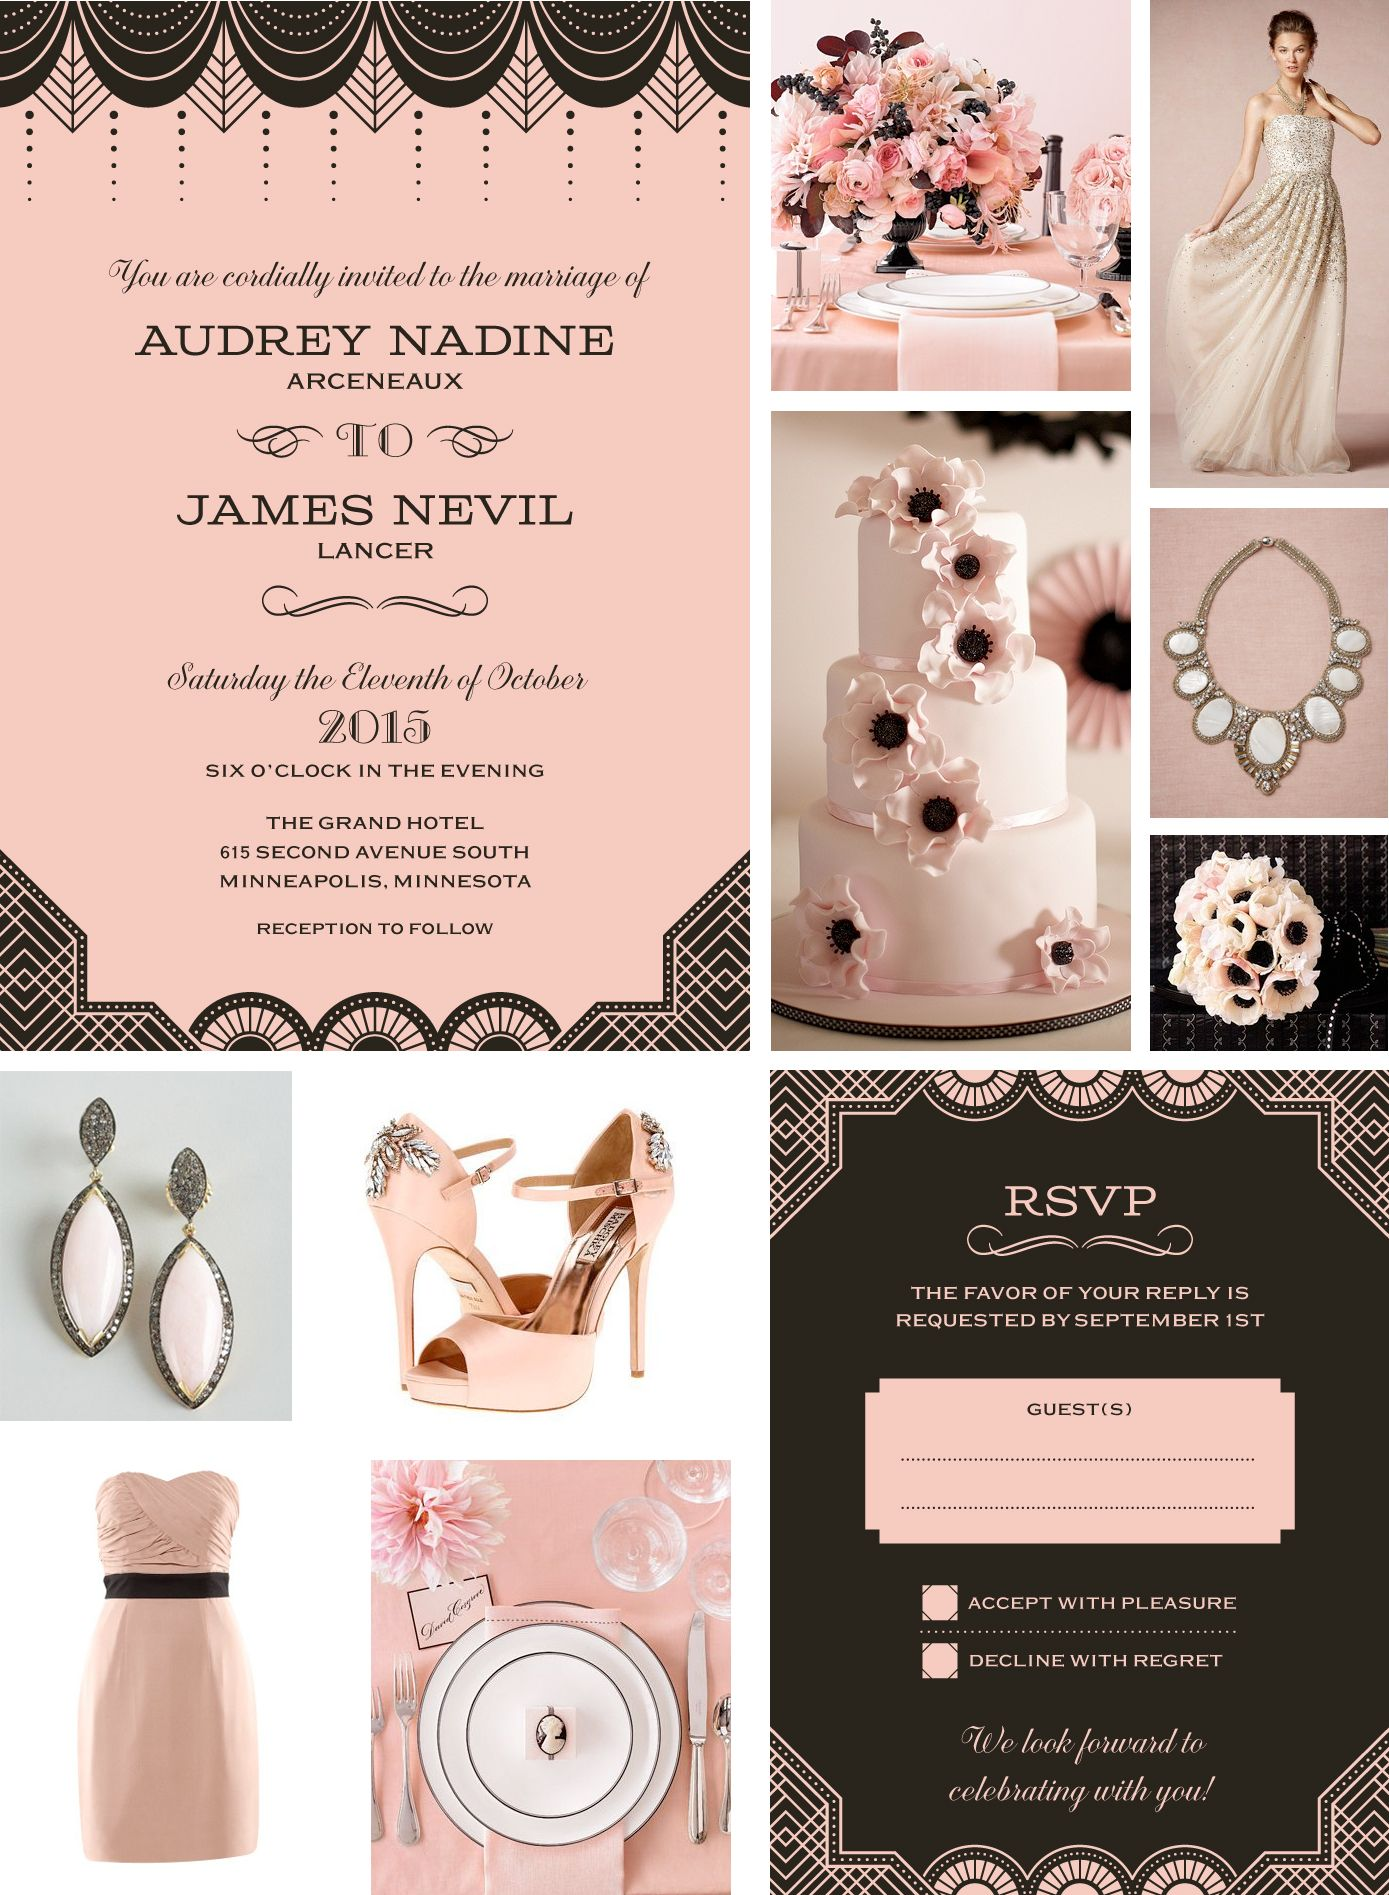 Blush Pink & Black Wedding | WEDDING THEMES | Pinterest | Pink black ...